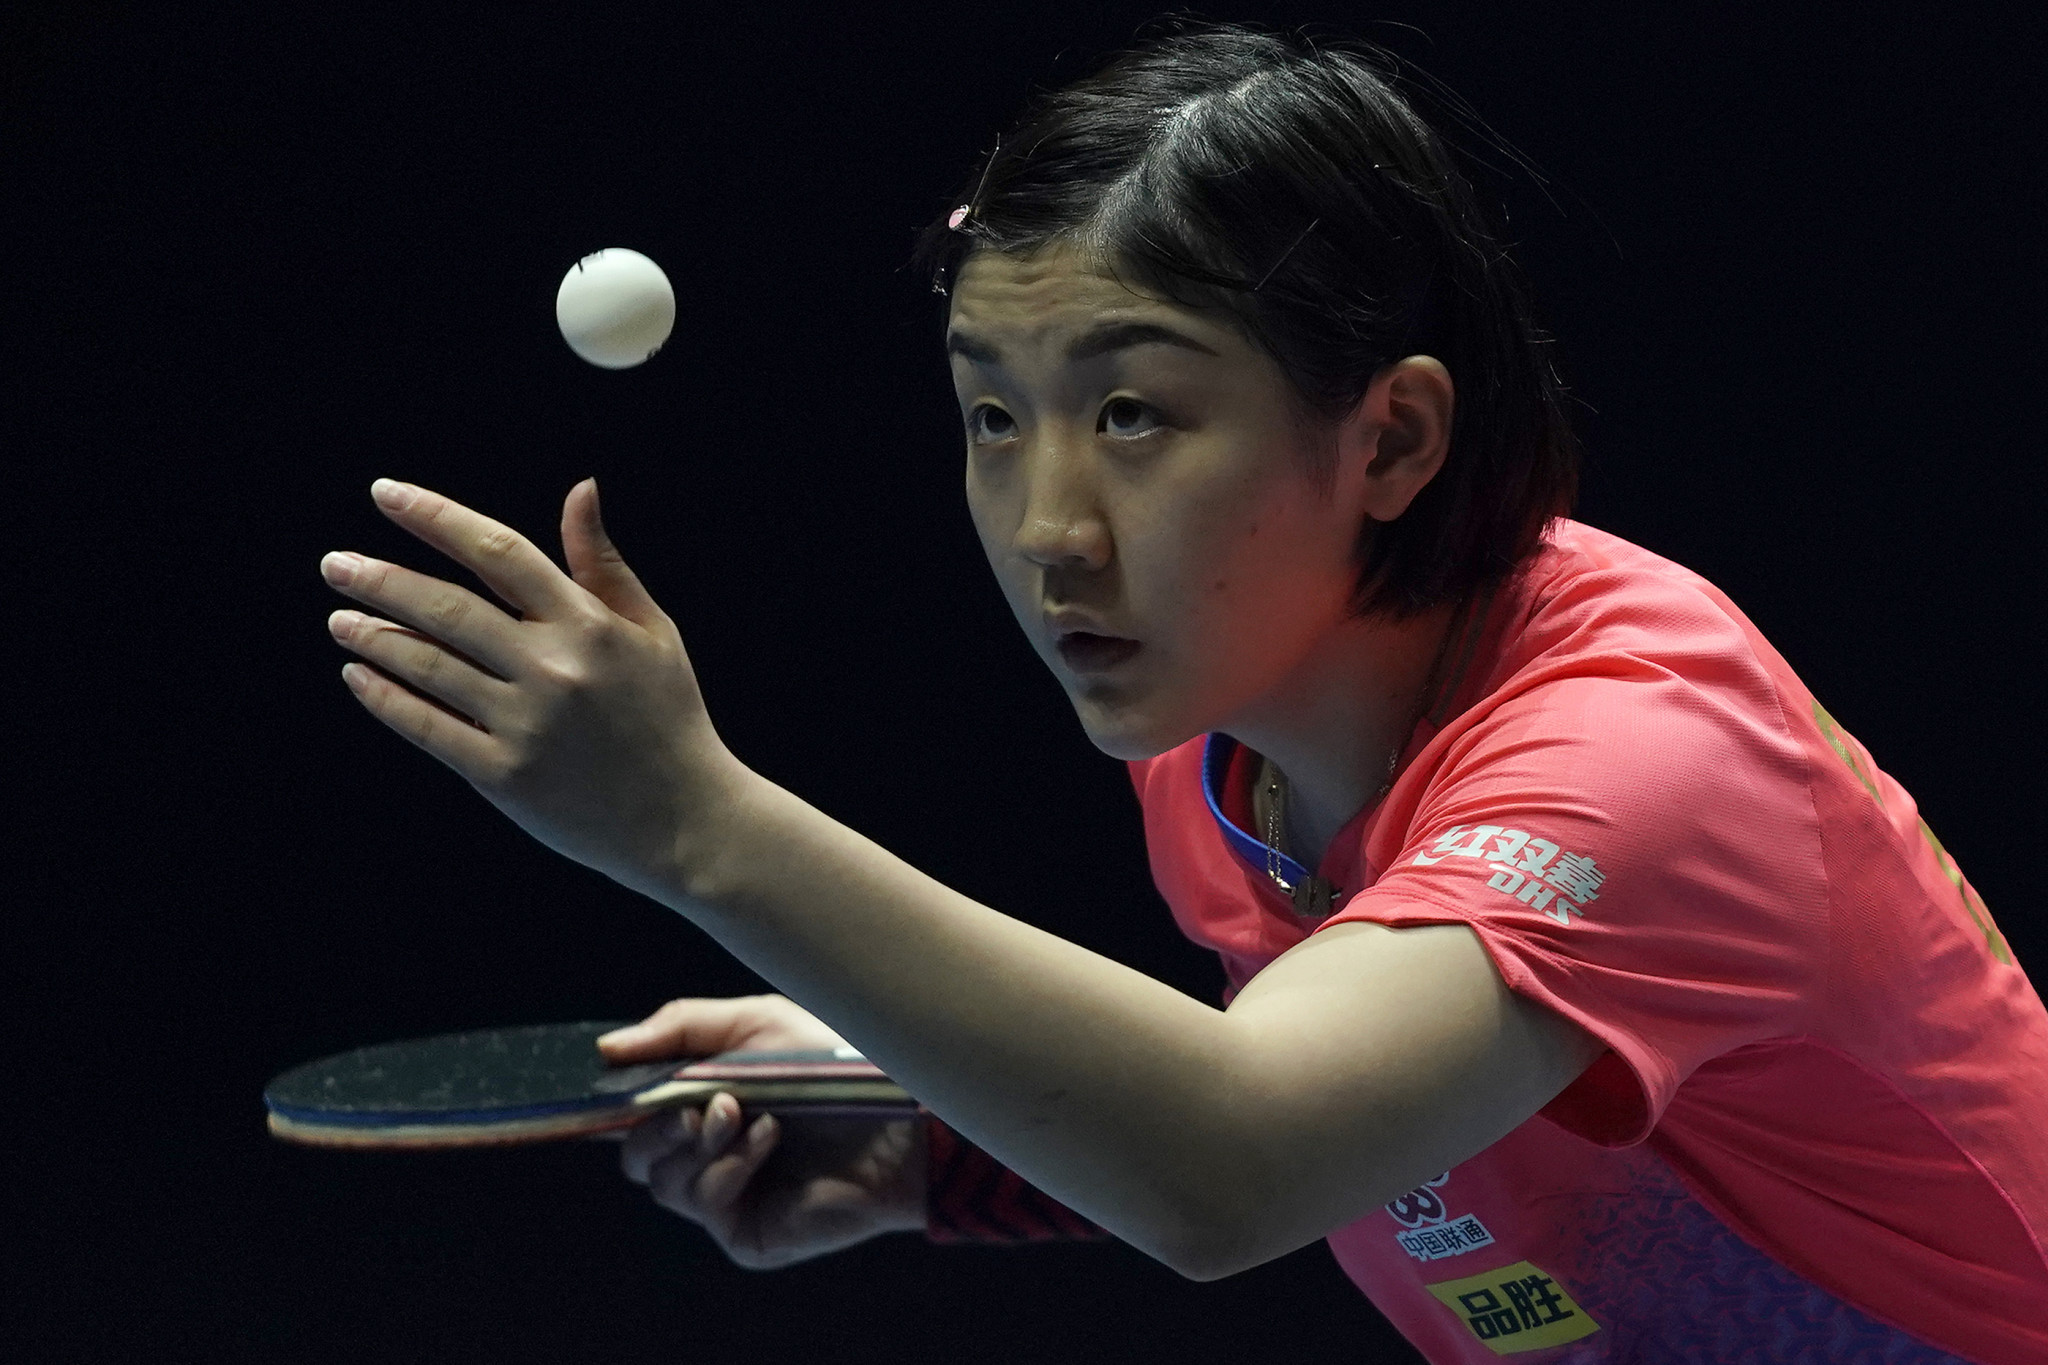 Chen gunning for historic fourth consecutive title at ITTF Finals in Zhengzhou